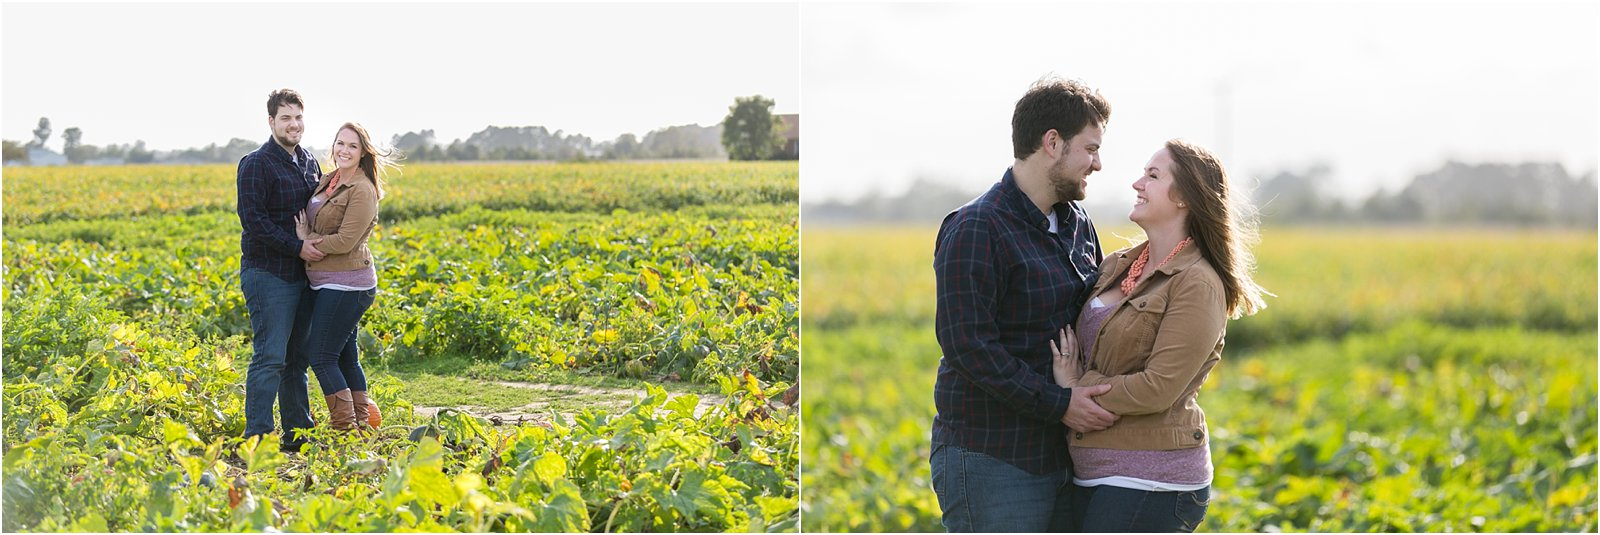 jessica_ryan_photography_pumpkin_patch_engagement_portraits_fall_october_engagements_virginia_beach_chesapeake_0282